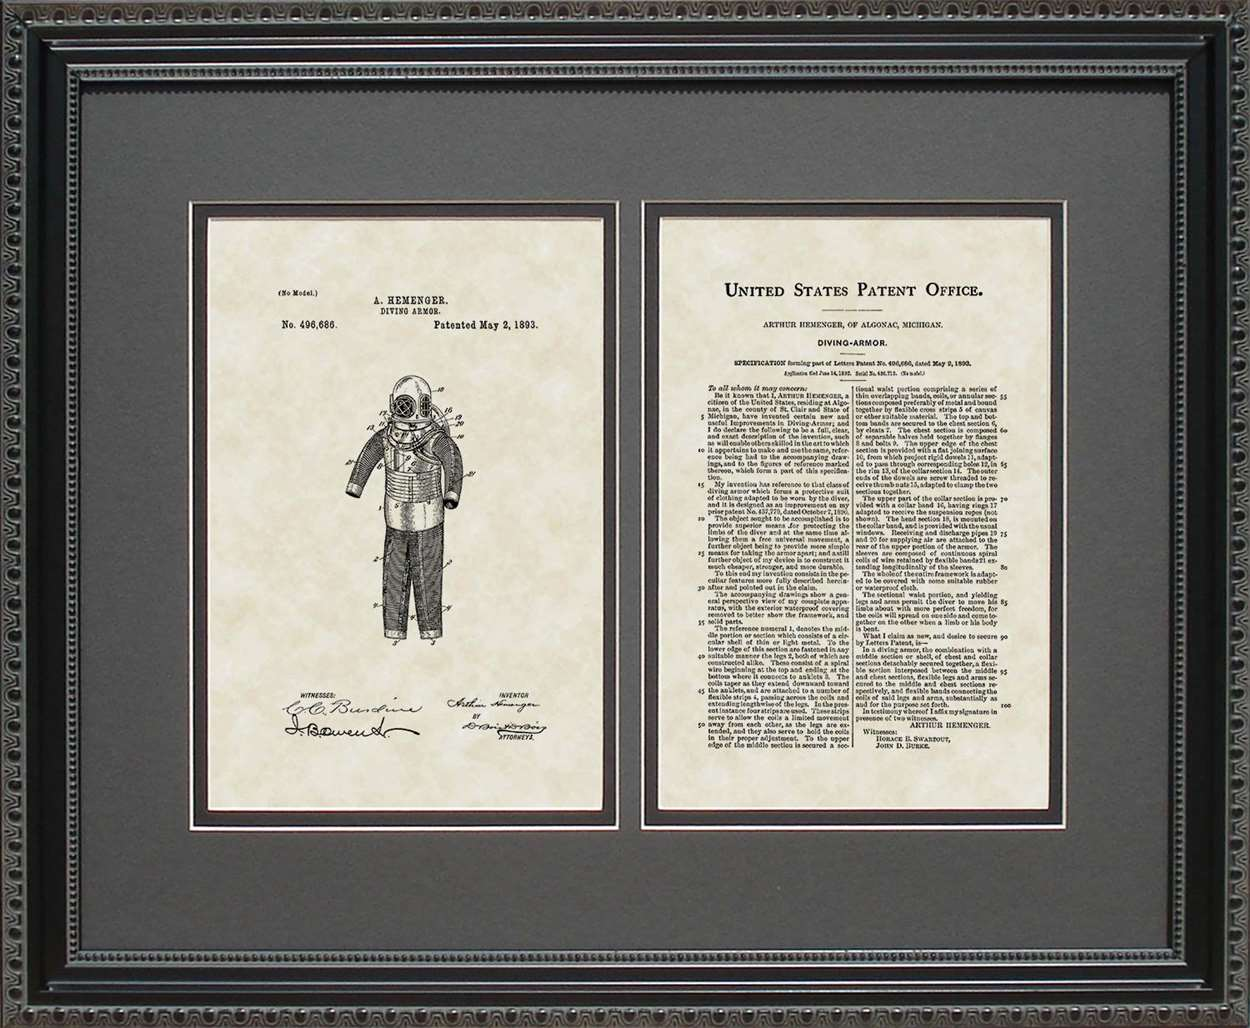 Diving Suit Patent, Art & Copy, Hemenger, 1893, 16x20